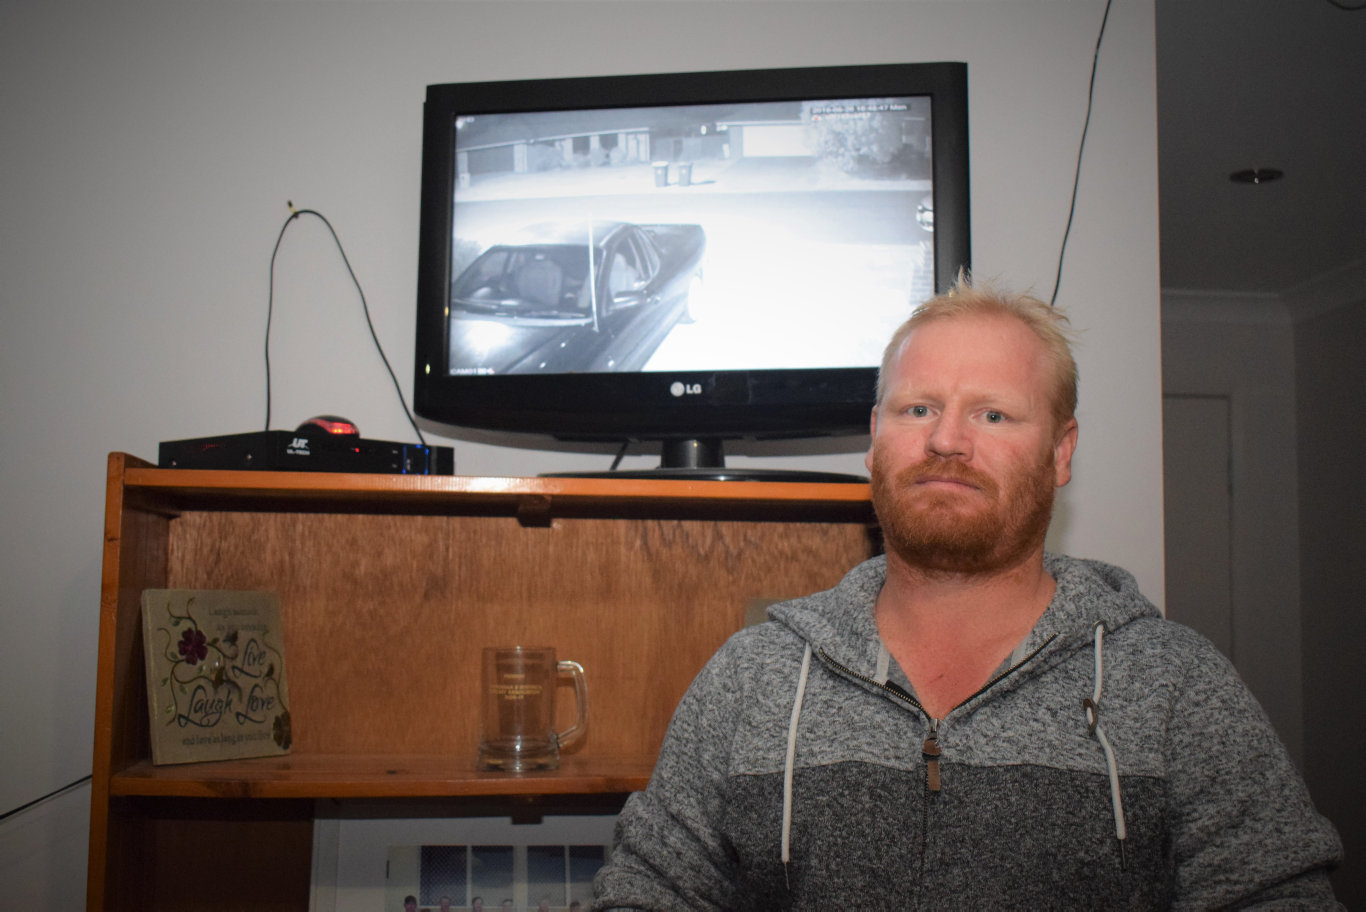 CHANGE THE SYSTEM: Daniel Braxton says Chinchilla is no longer a safe place to raise a family. Despite spending hundreds on home security cameras he is still regularly visited by youths trying to break in and steal from his property.